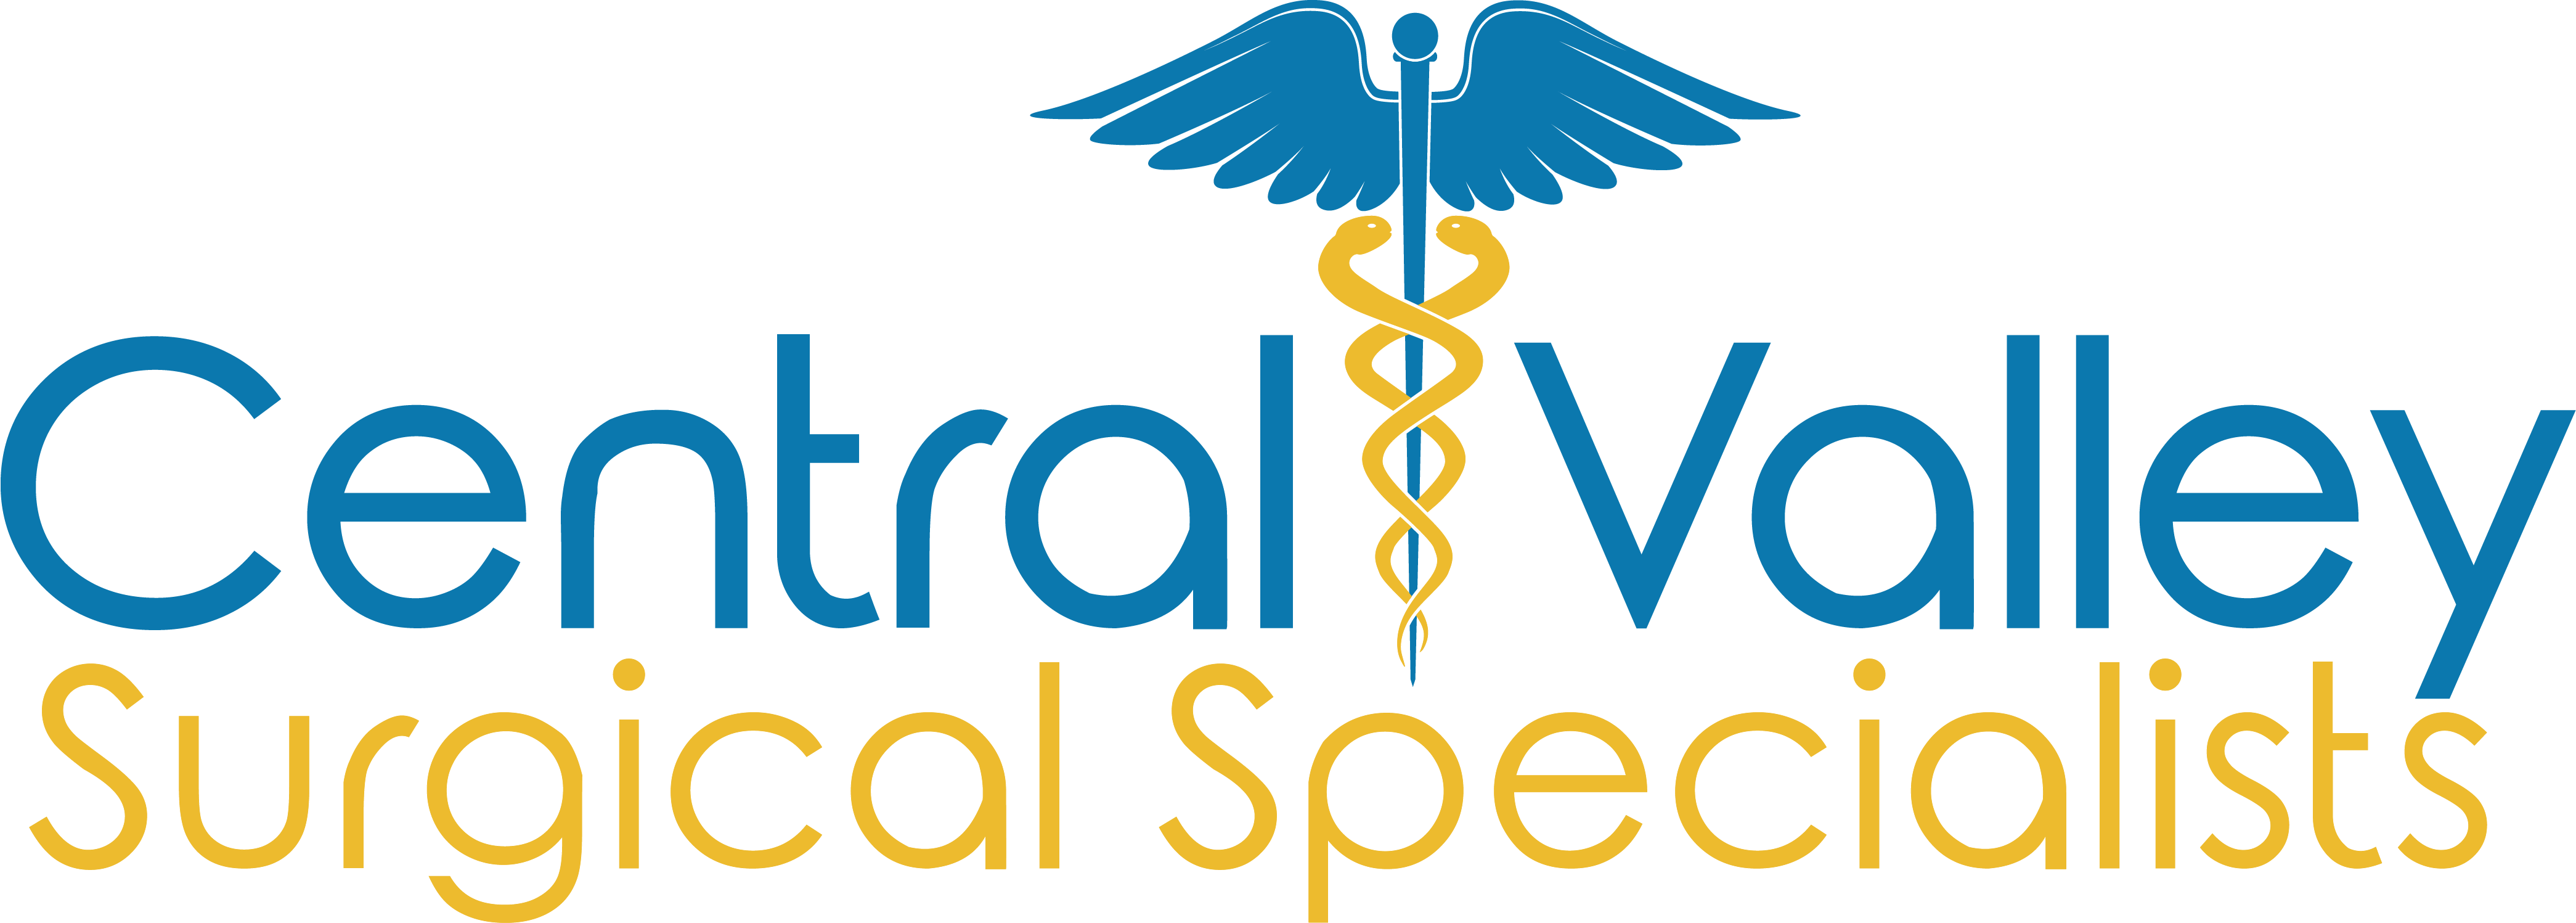 Central Valley Surgery Specialists